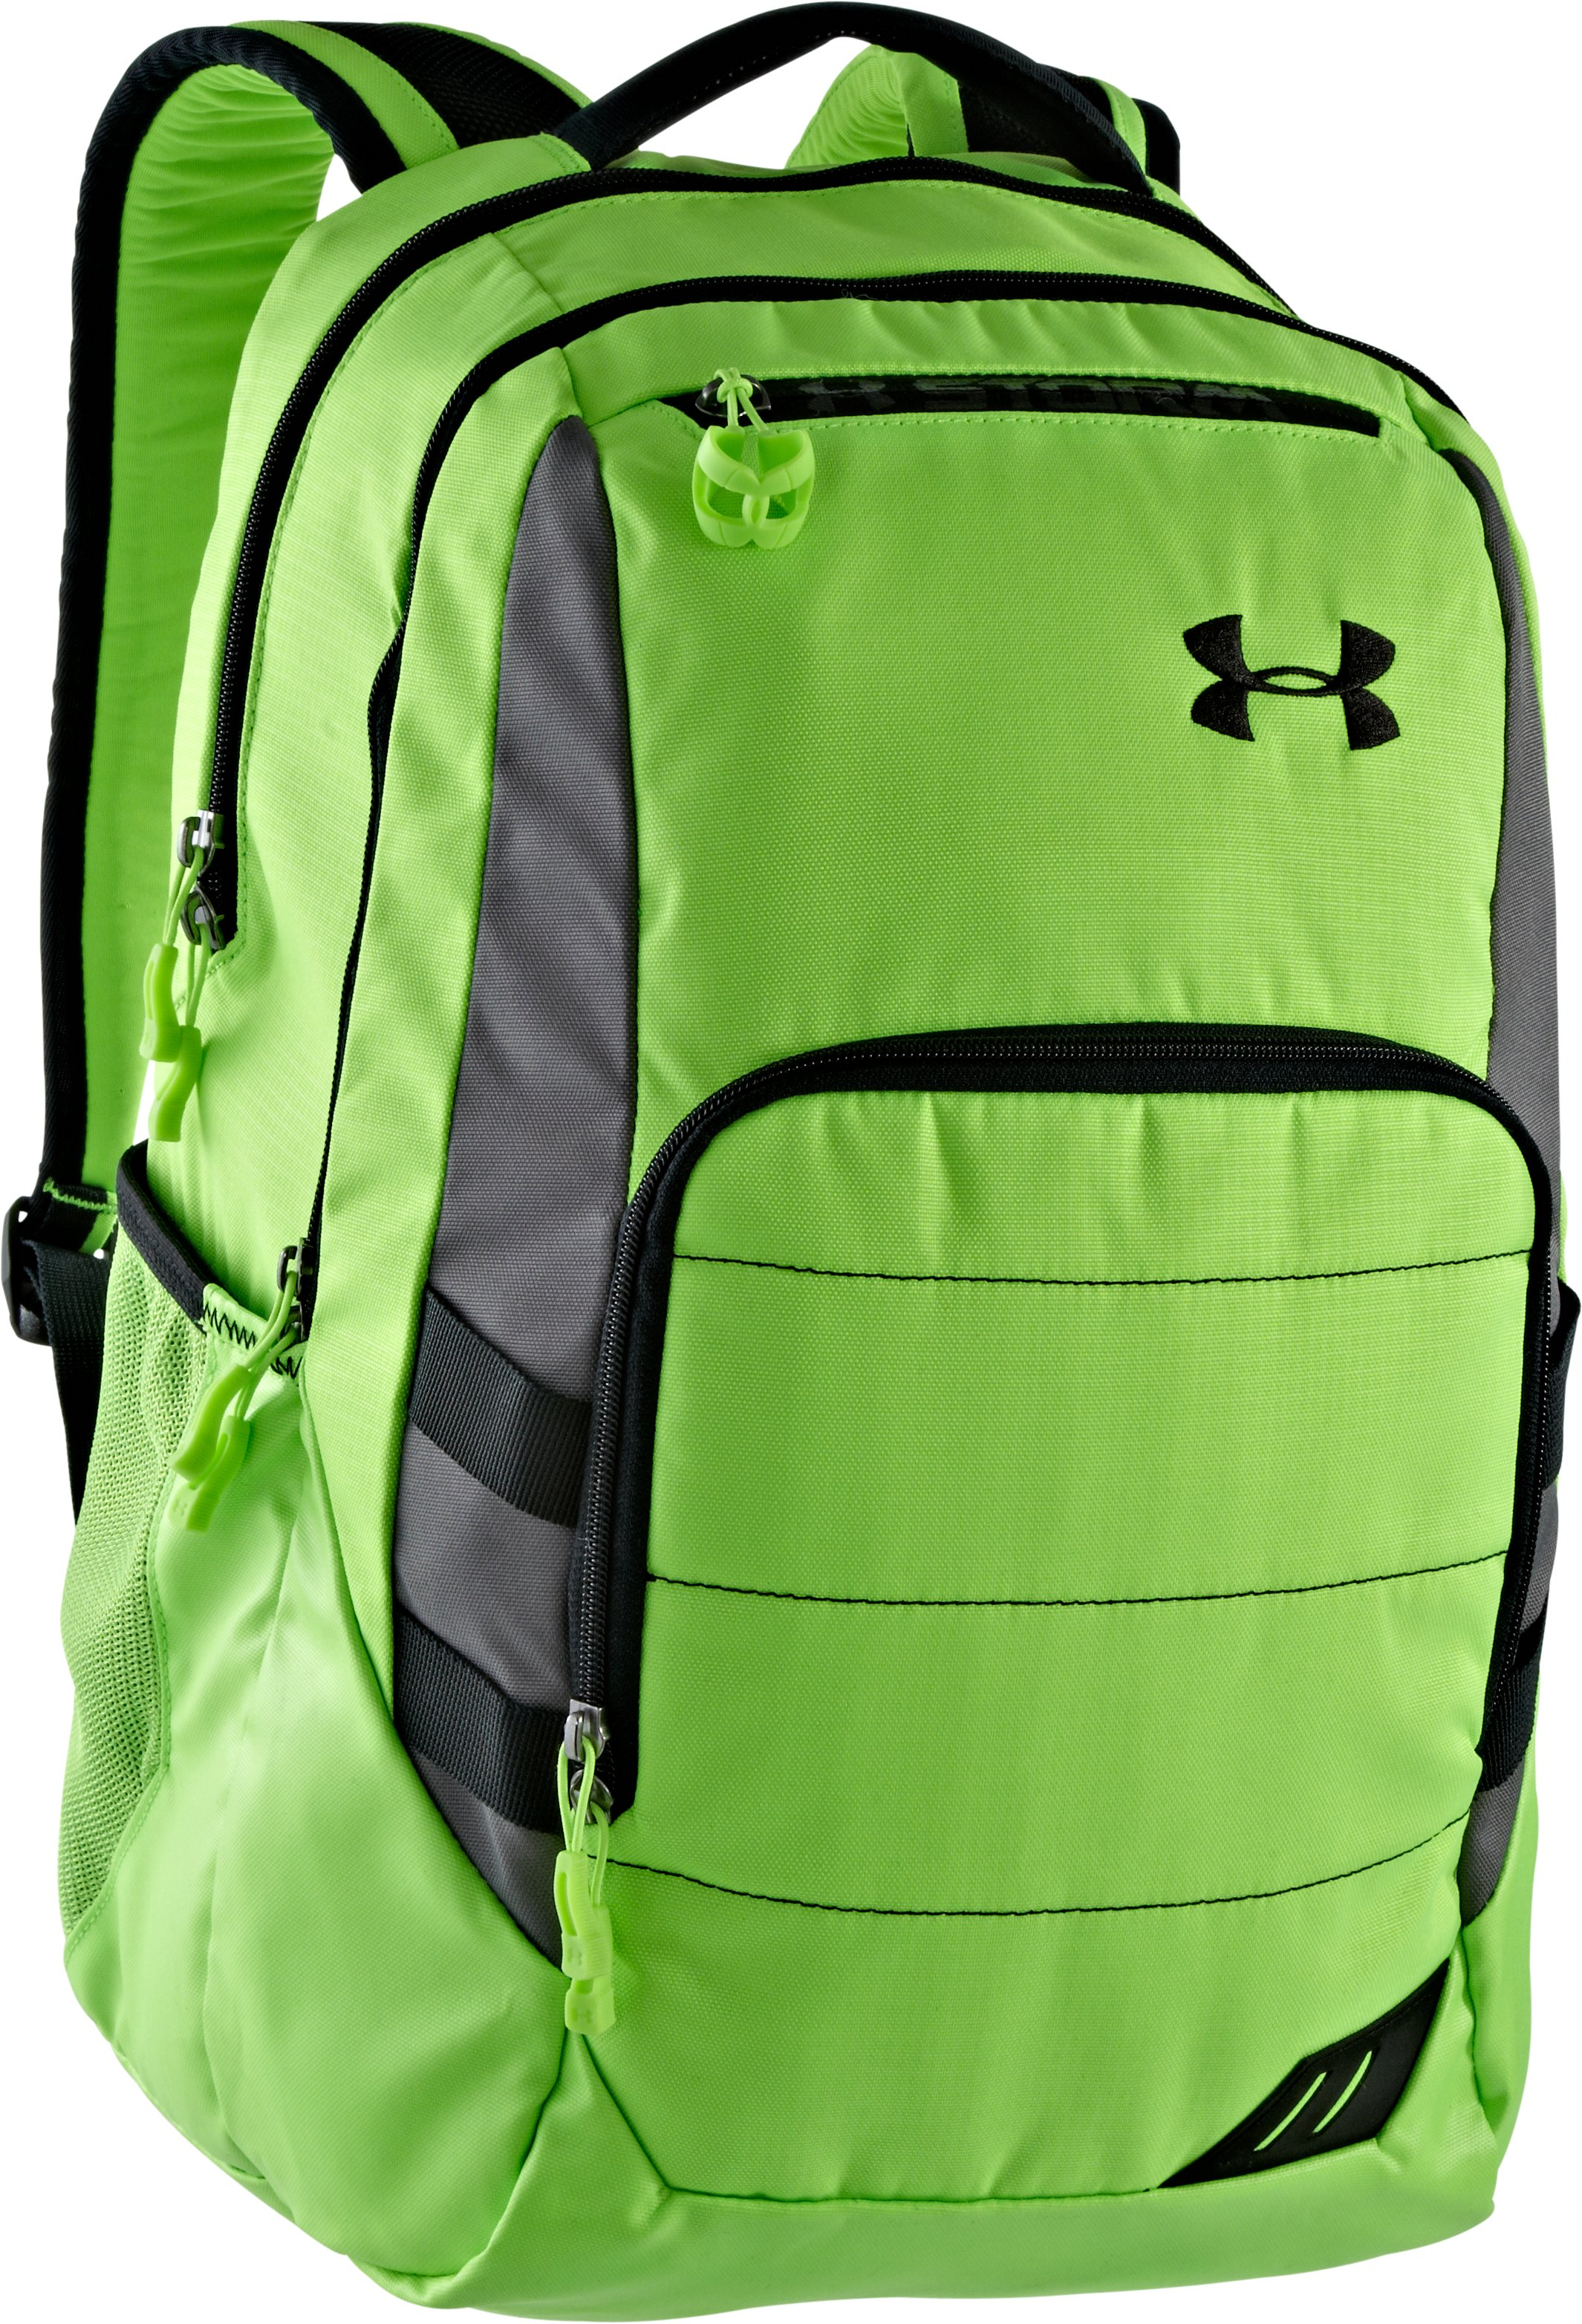 UA Camden Storm Backpack, HYPER GREEN, undefined